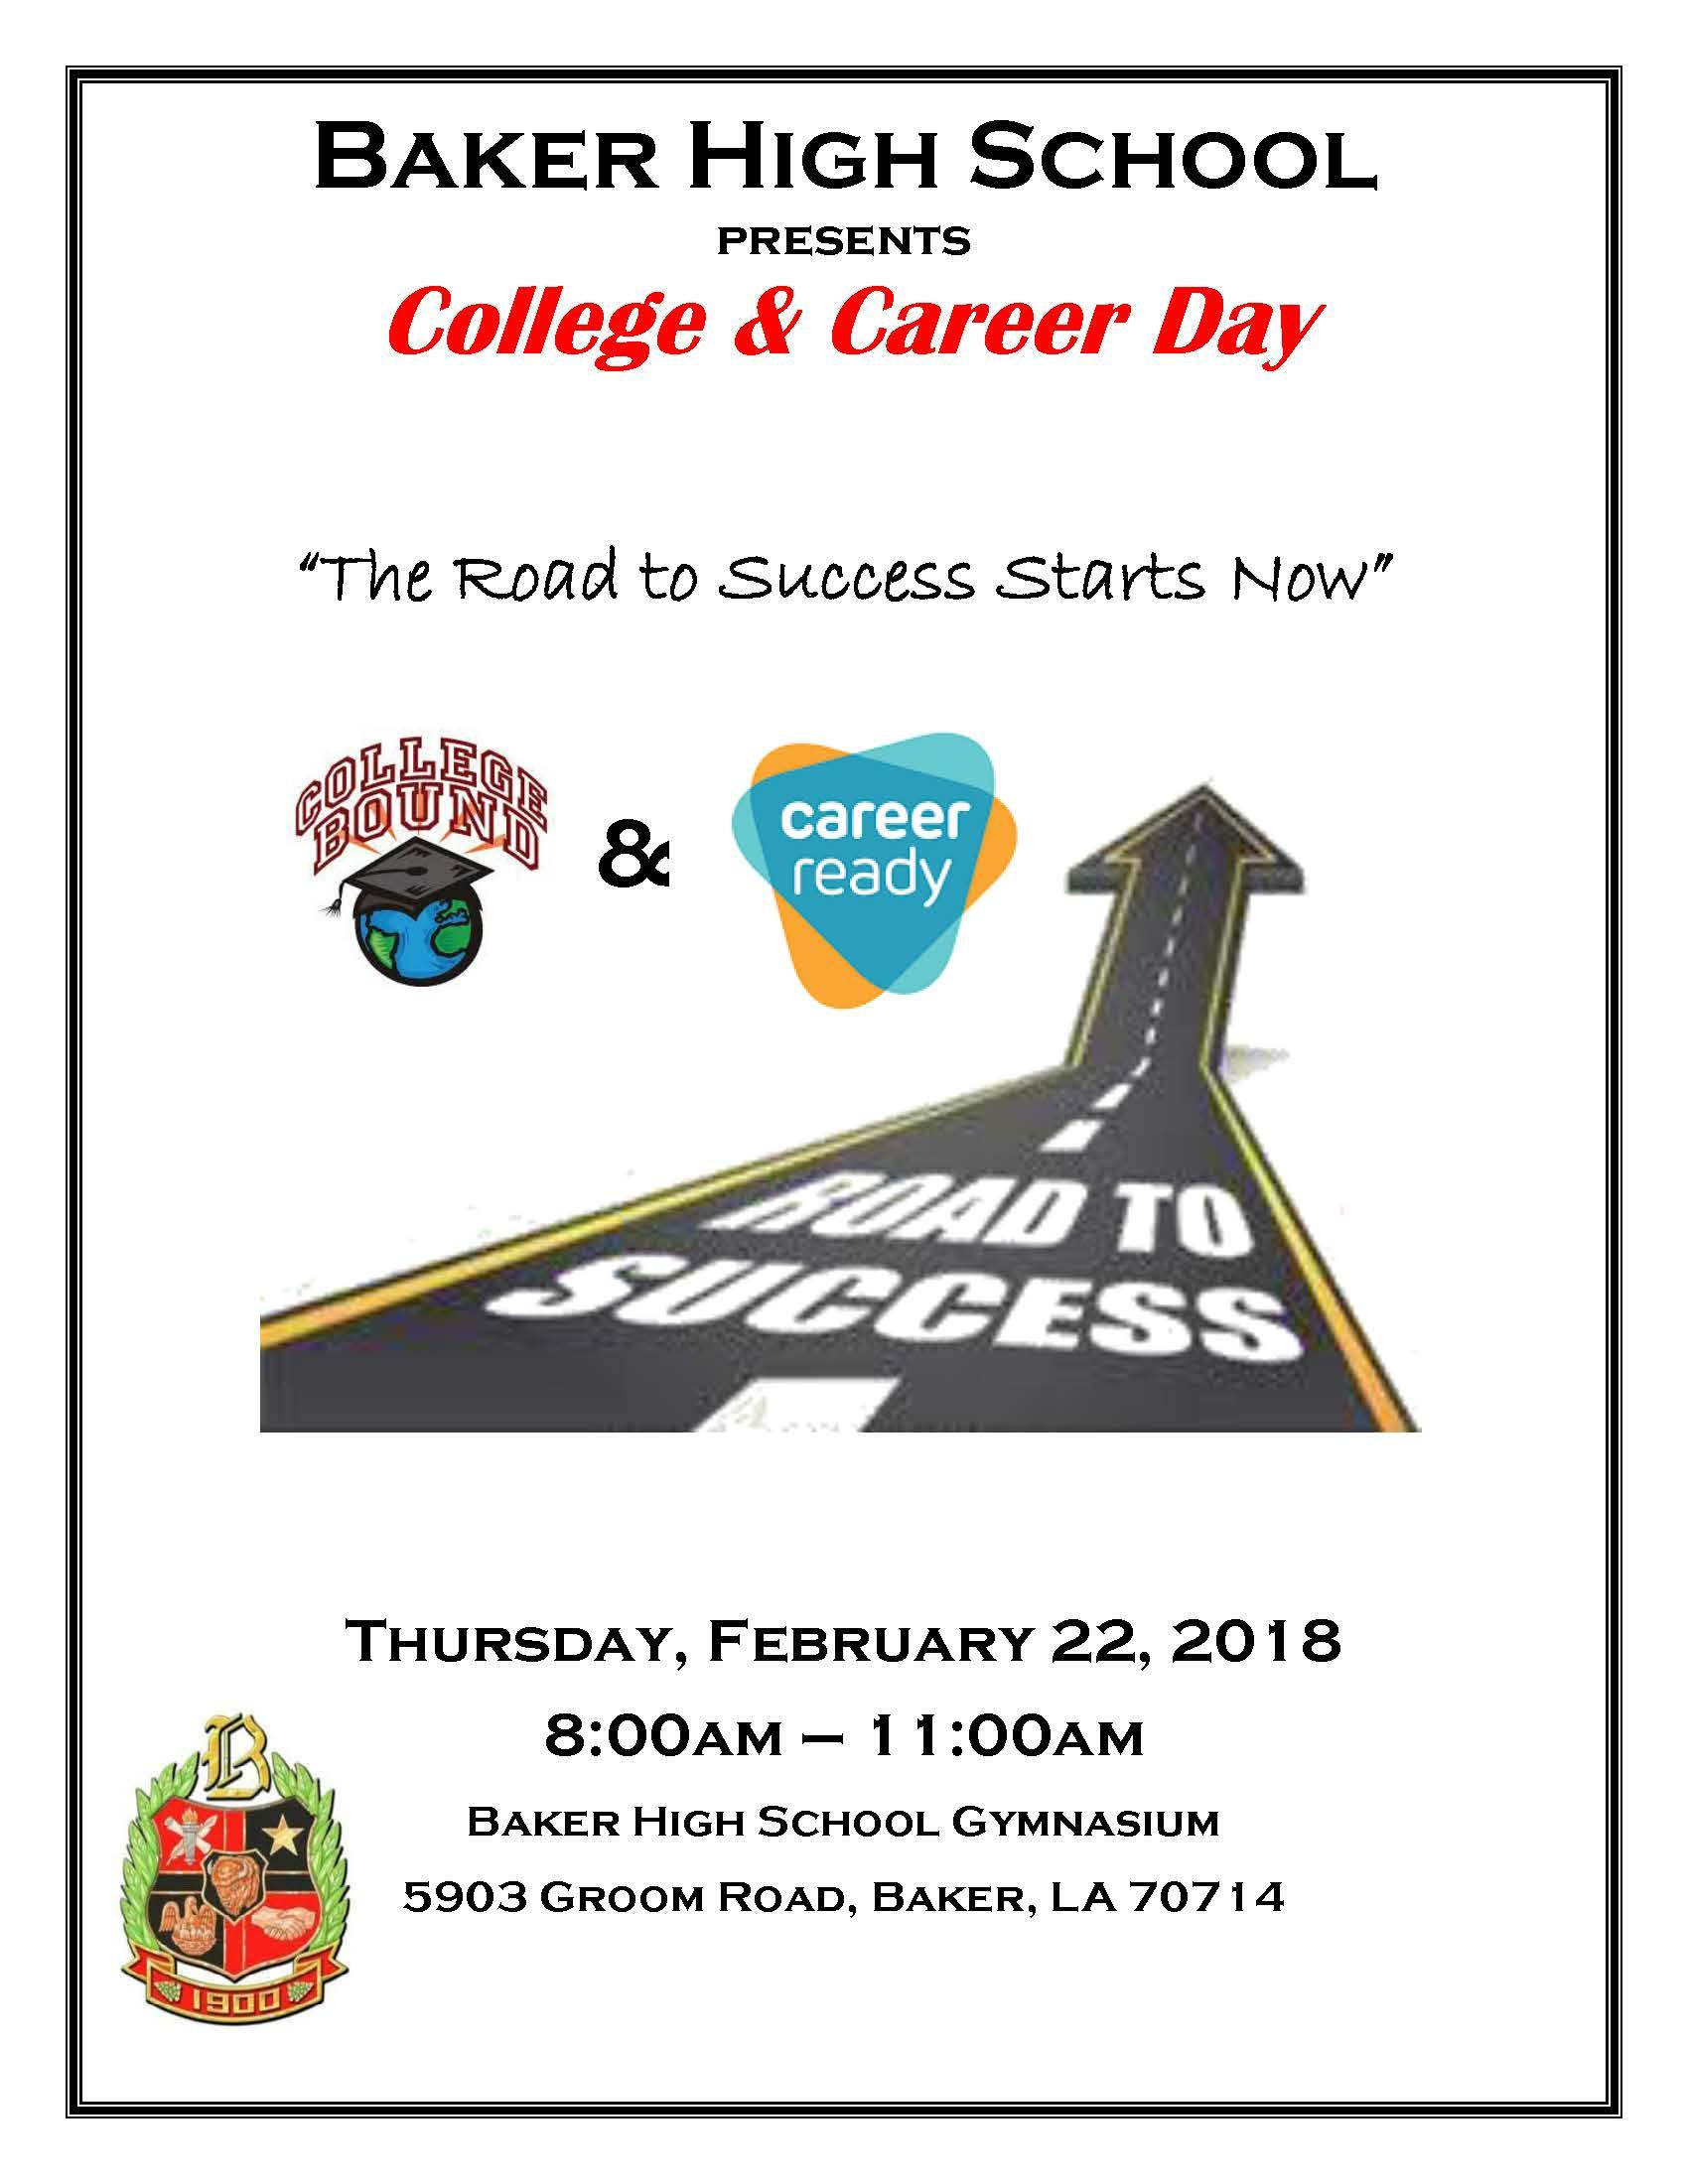 Photo of the flyer advertising the Baker High School upcoming College and Career Day